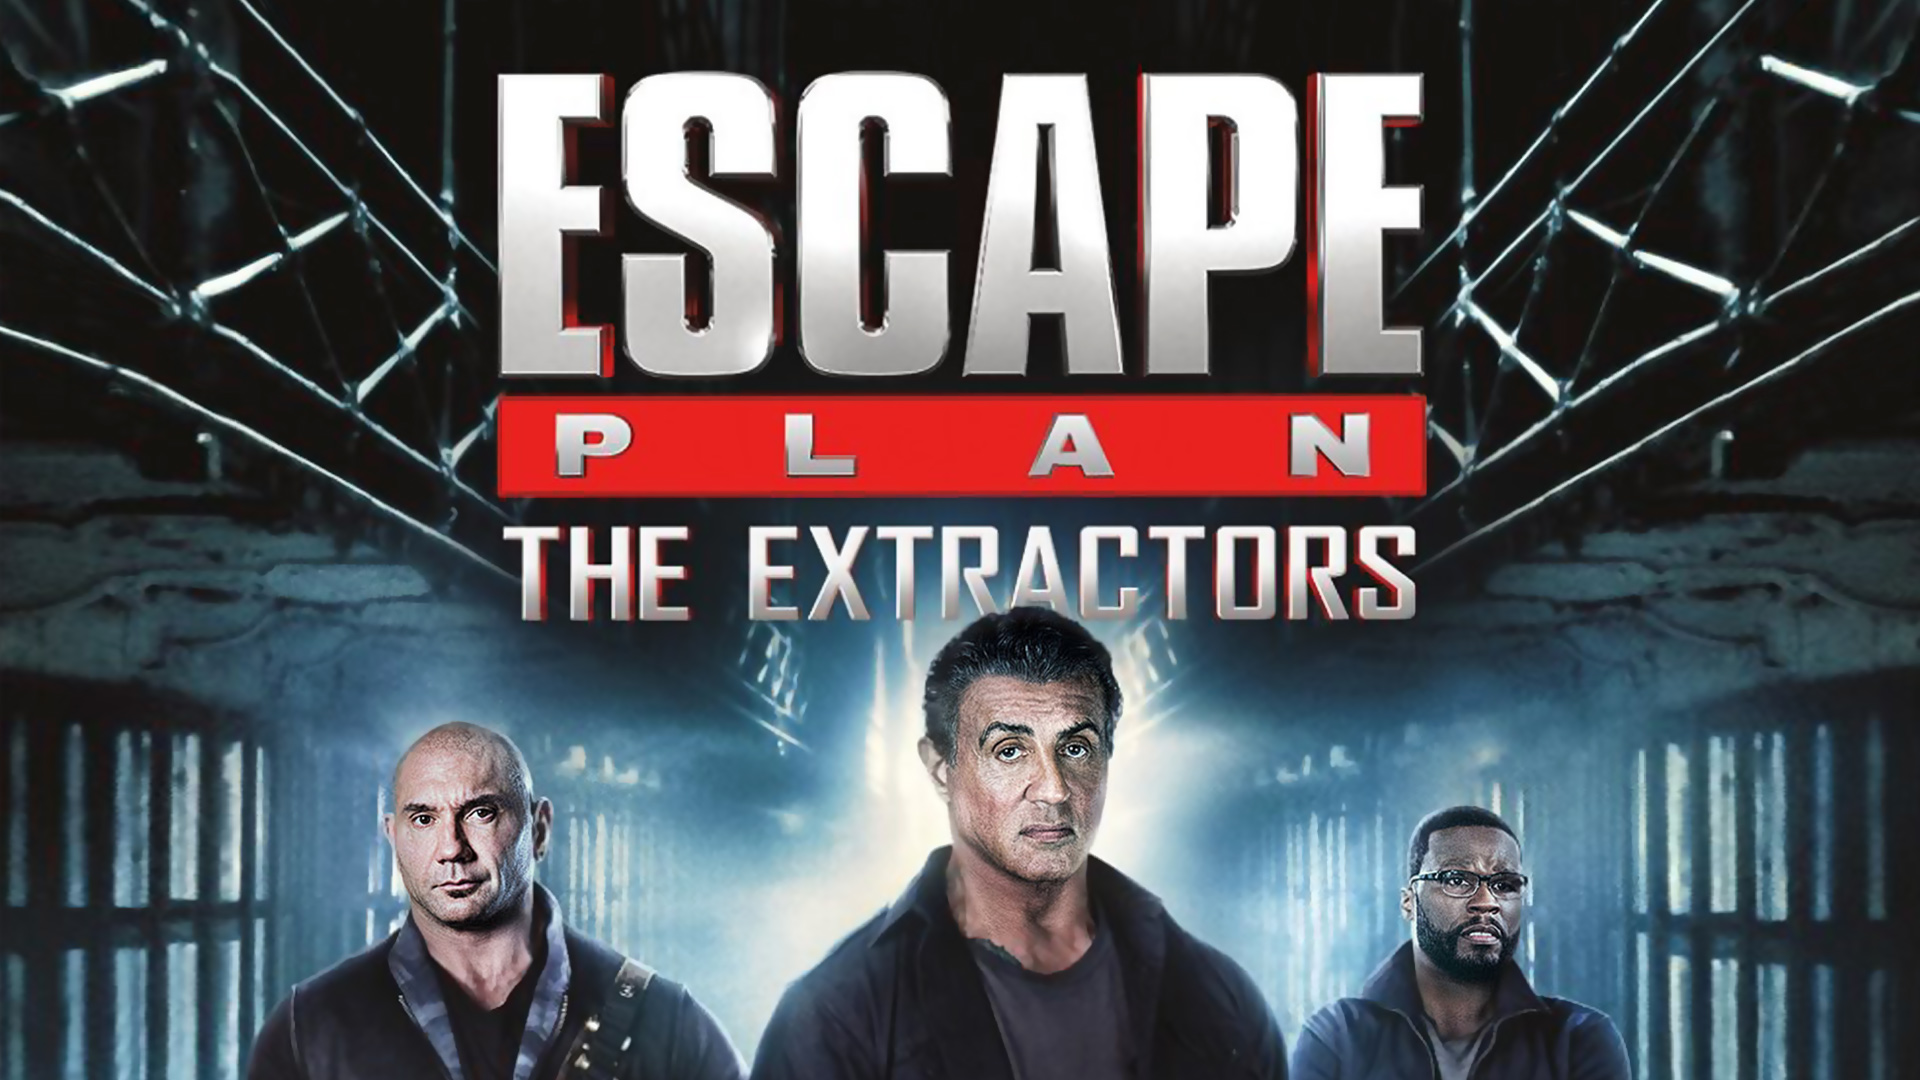 Escape Plan: The Extractors (4K UHD)